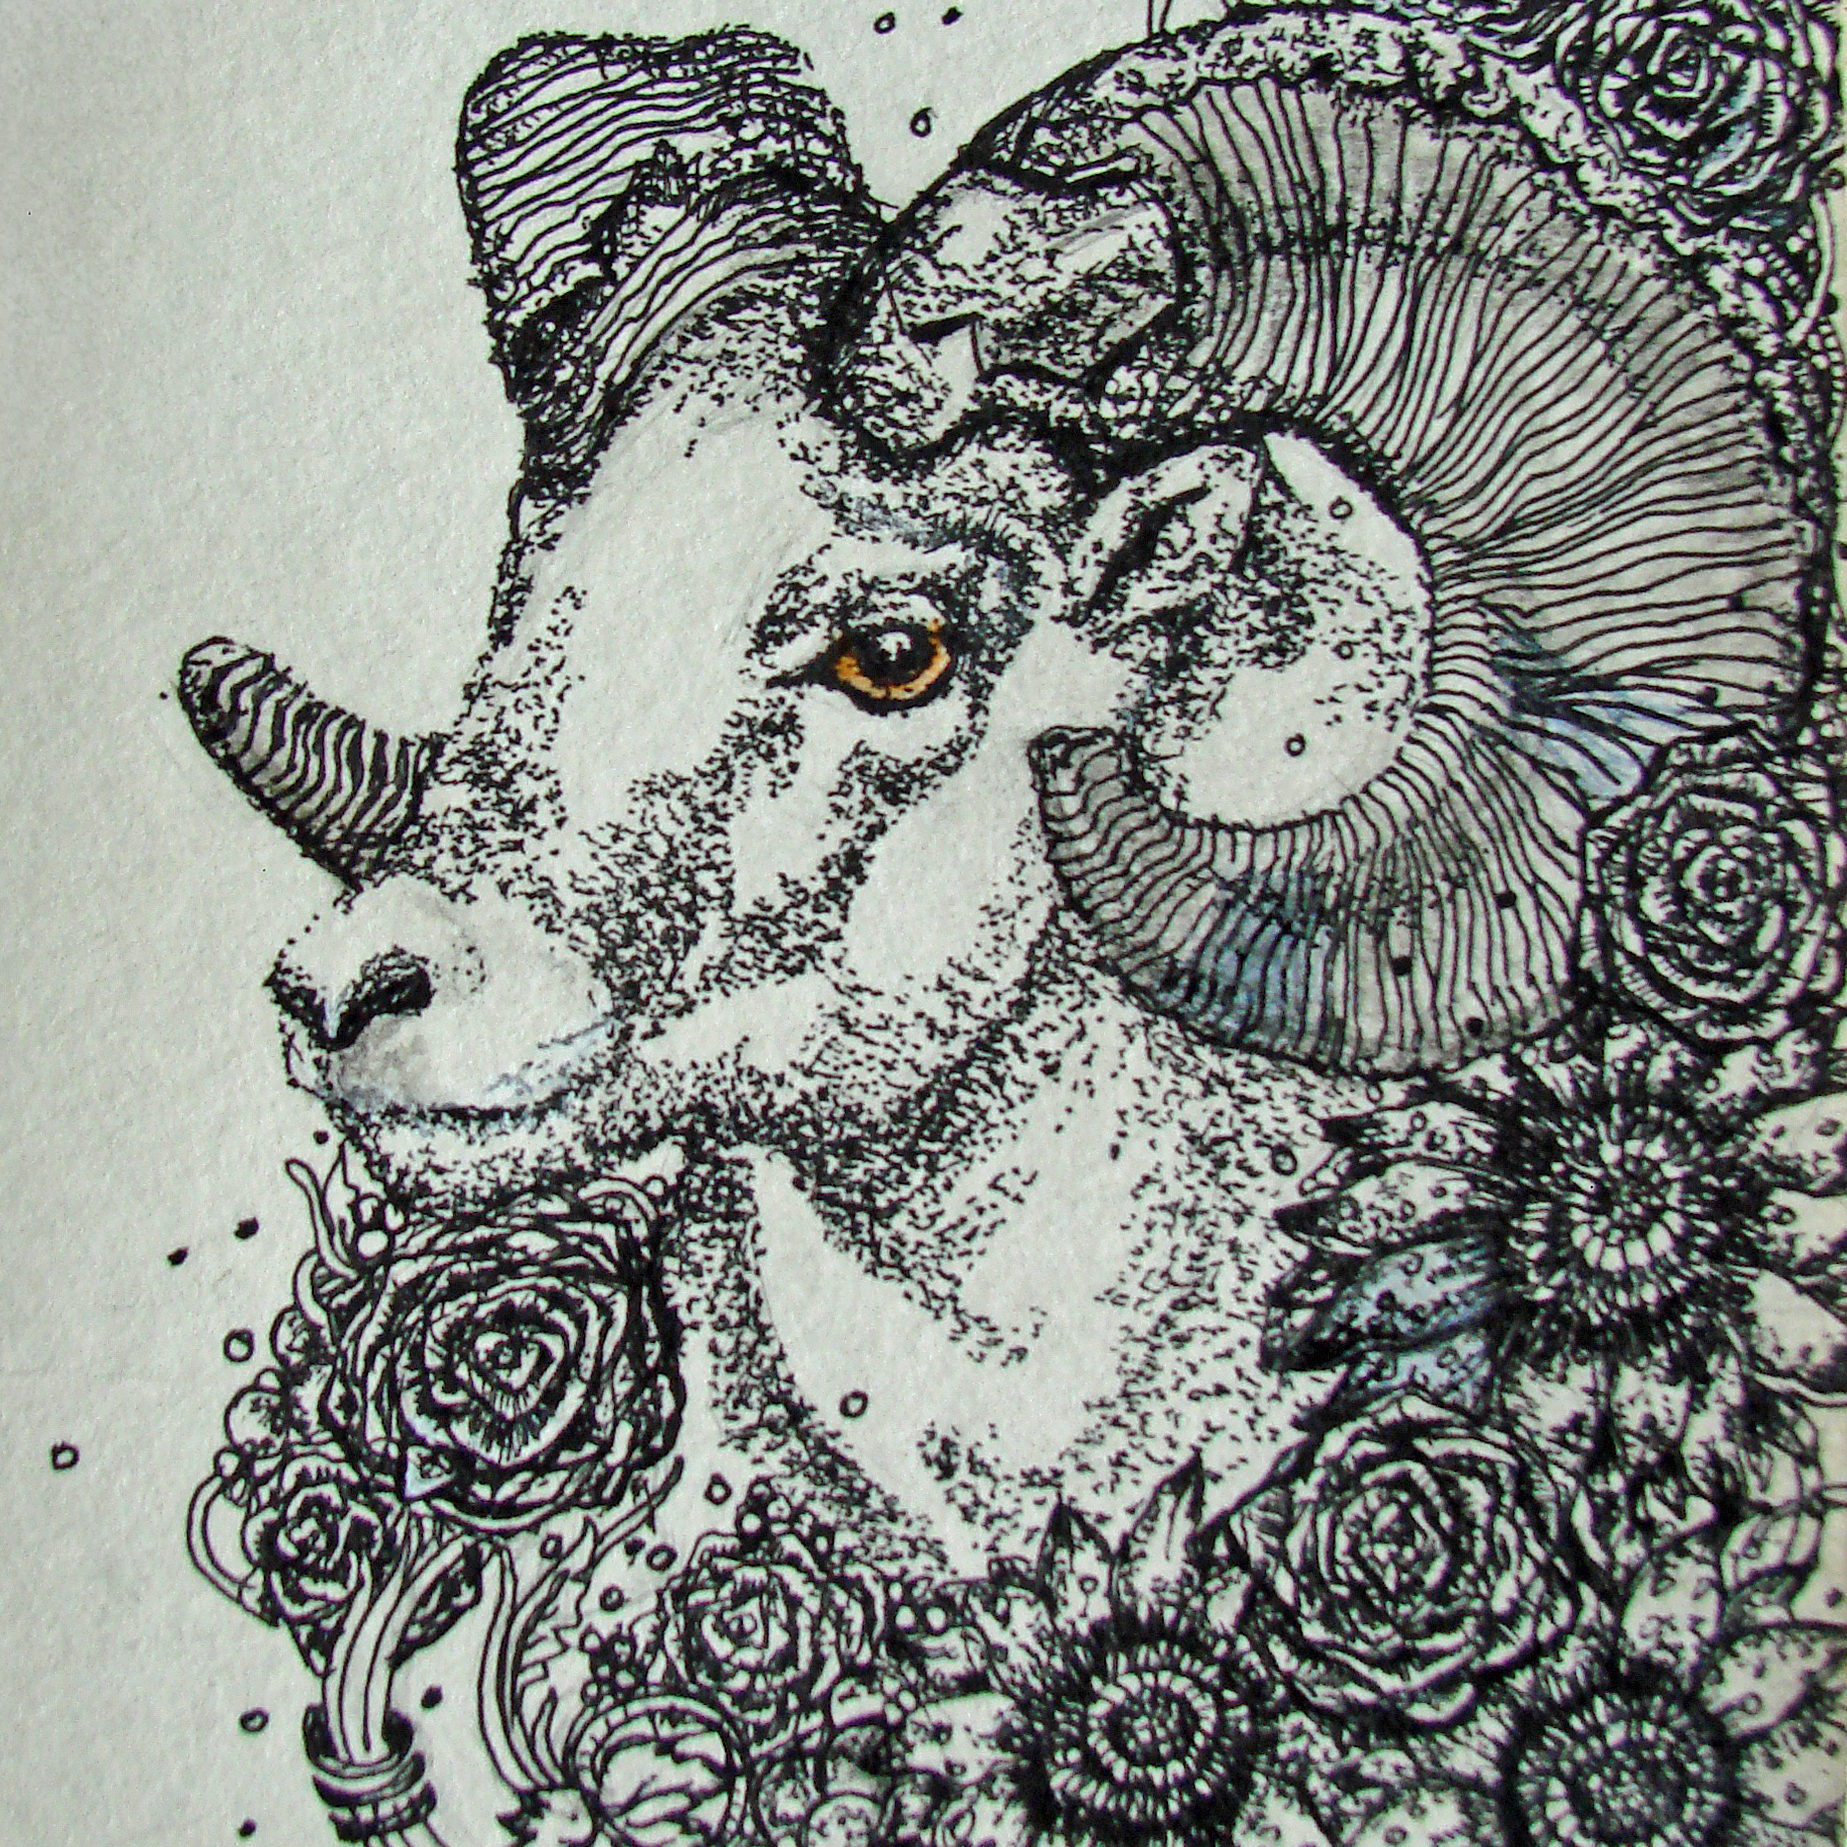 07 Chief Bighorn, 2016 Pen & Ink drawing